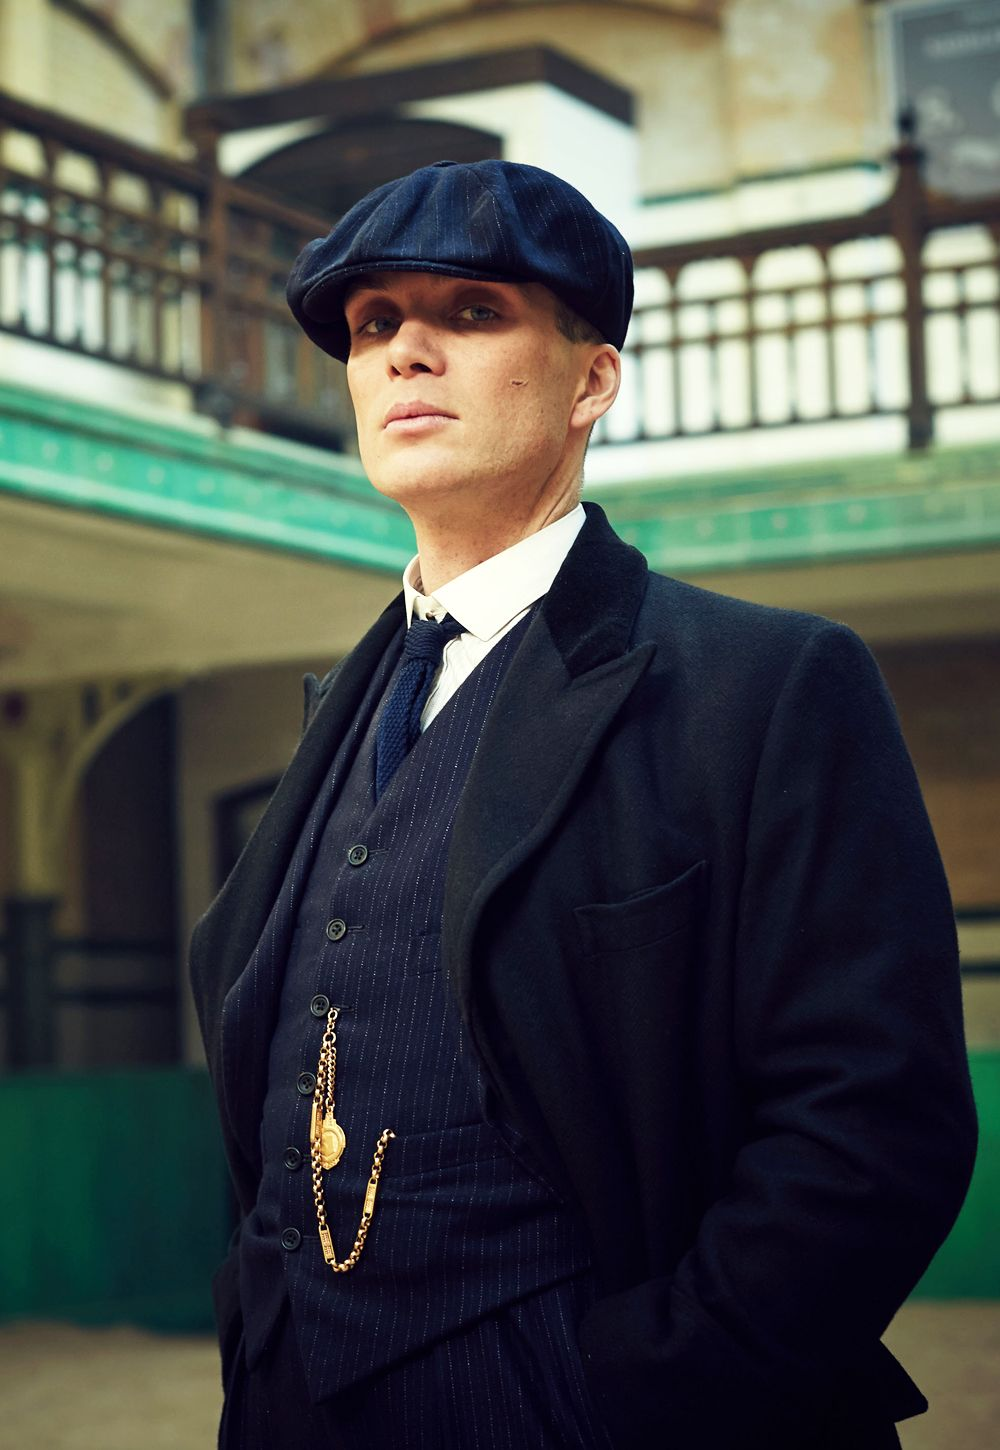 ae6c88ec920 Cillian Murphy as Tommy Shelby in Peaky Blinders S2 (check out the gallery  at farfarawaysite for stunning stills in HQ)